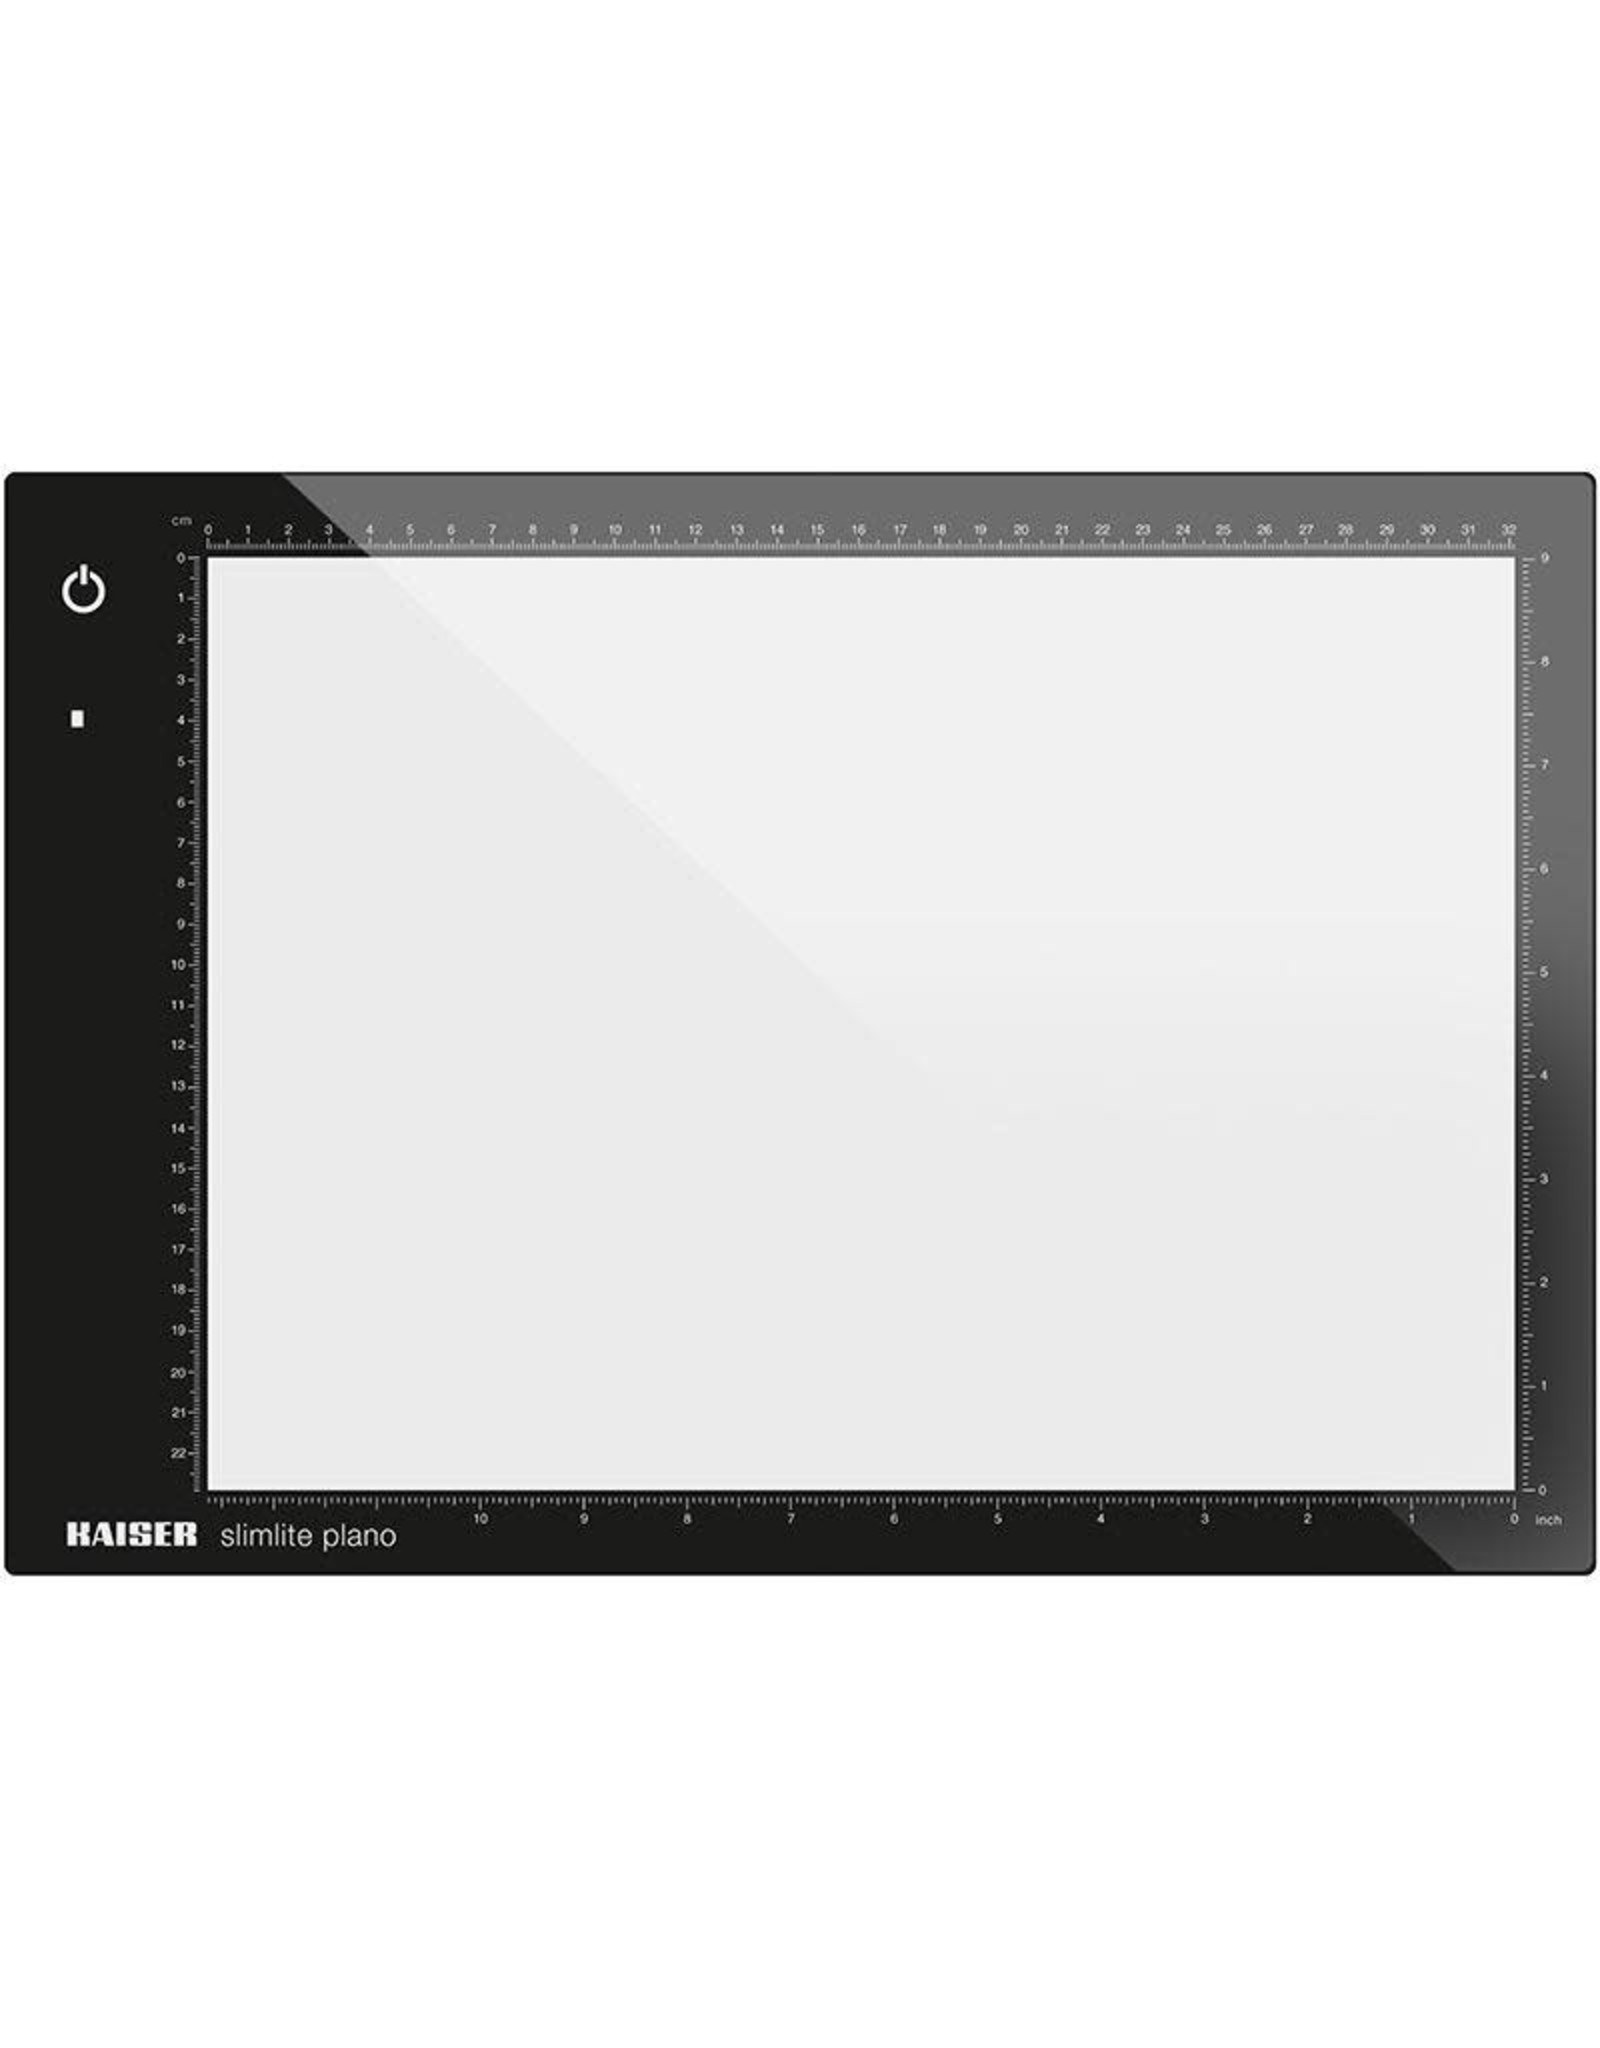 """Kaiser Kaiser """"slimlite plano"""" LED Light Box (Medium), 5000 K, dimmable, mains or battery operation, incl. mains adapter / charger, illuminated area 32 x 22,8 cm (12.6 x 9.0 in.) 100 - 120 V / 60 Hz, US-Plug"""